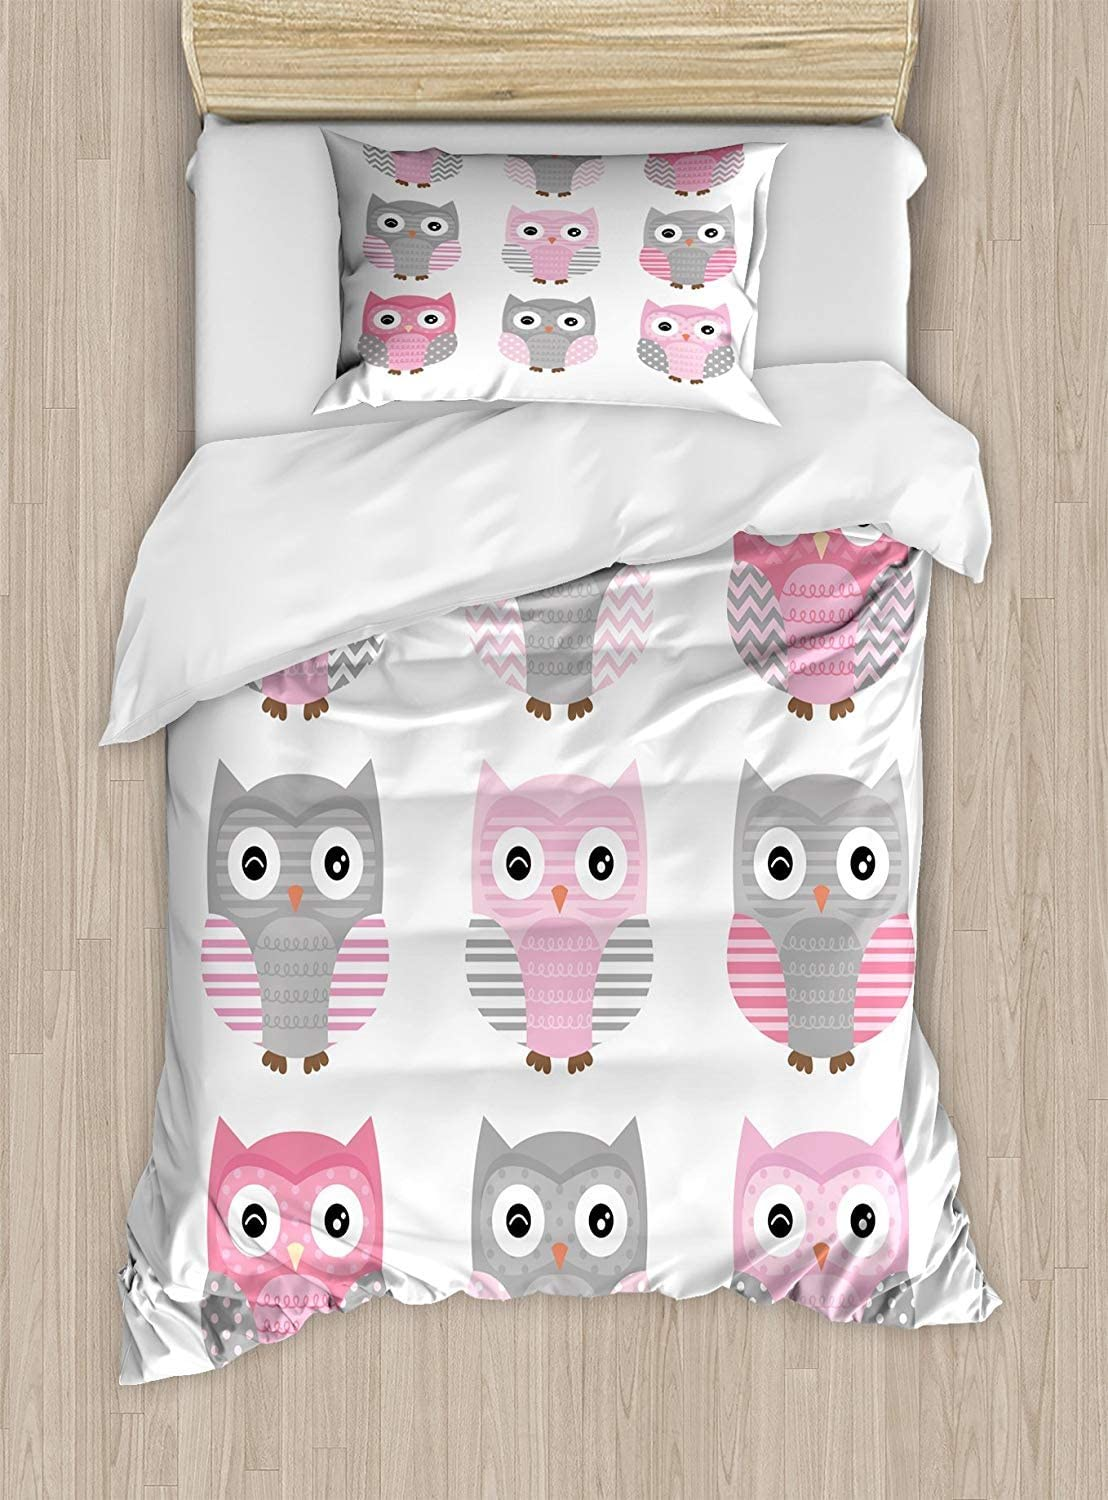 Twin XL Extra Long Bedding Set,Pink and Grey Duvet Cover Set,Cute Owl Figures Nocturnal Exotic Mystic Forest Night Animals Illustration,Decorative 2 Piece Bedding Set with 1 Pillow Sham,Blush Grey